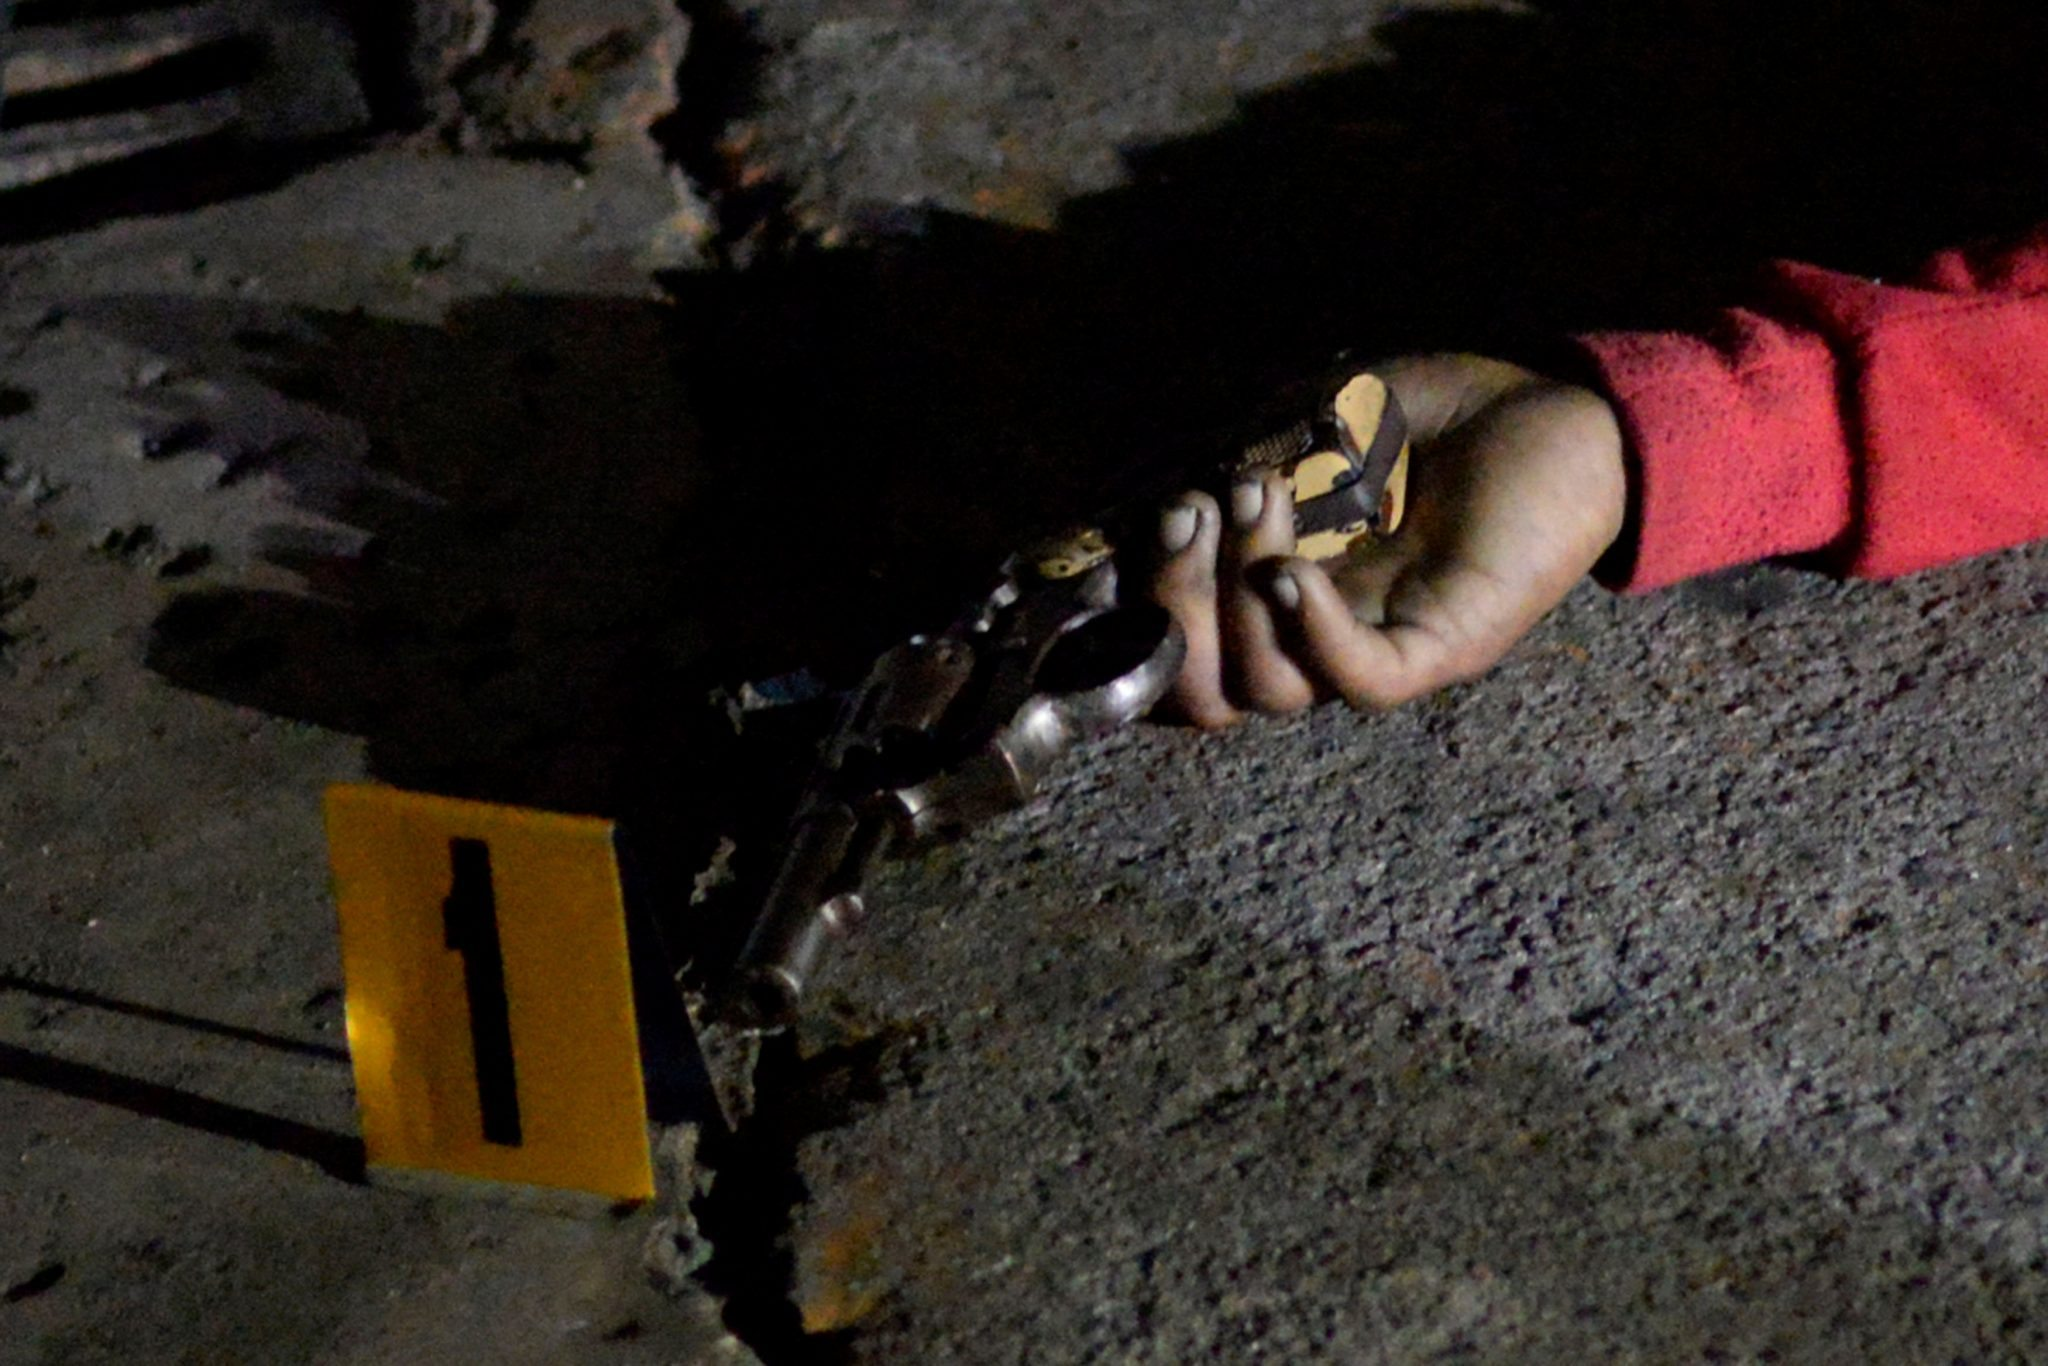 A revolver in the hand of one of the three bodies of men lying on a street, who police said were gunned down in an armed encounter by policemen at a police checkpoint in Manila, Philippines September 21, 2016 / REUTERS